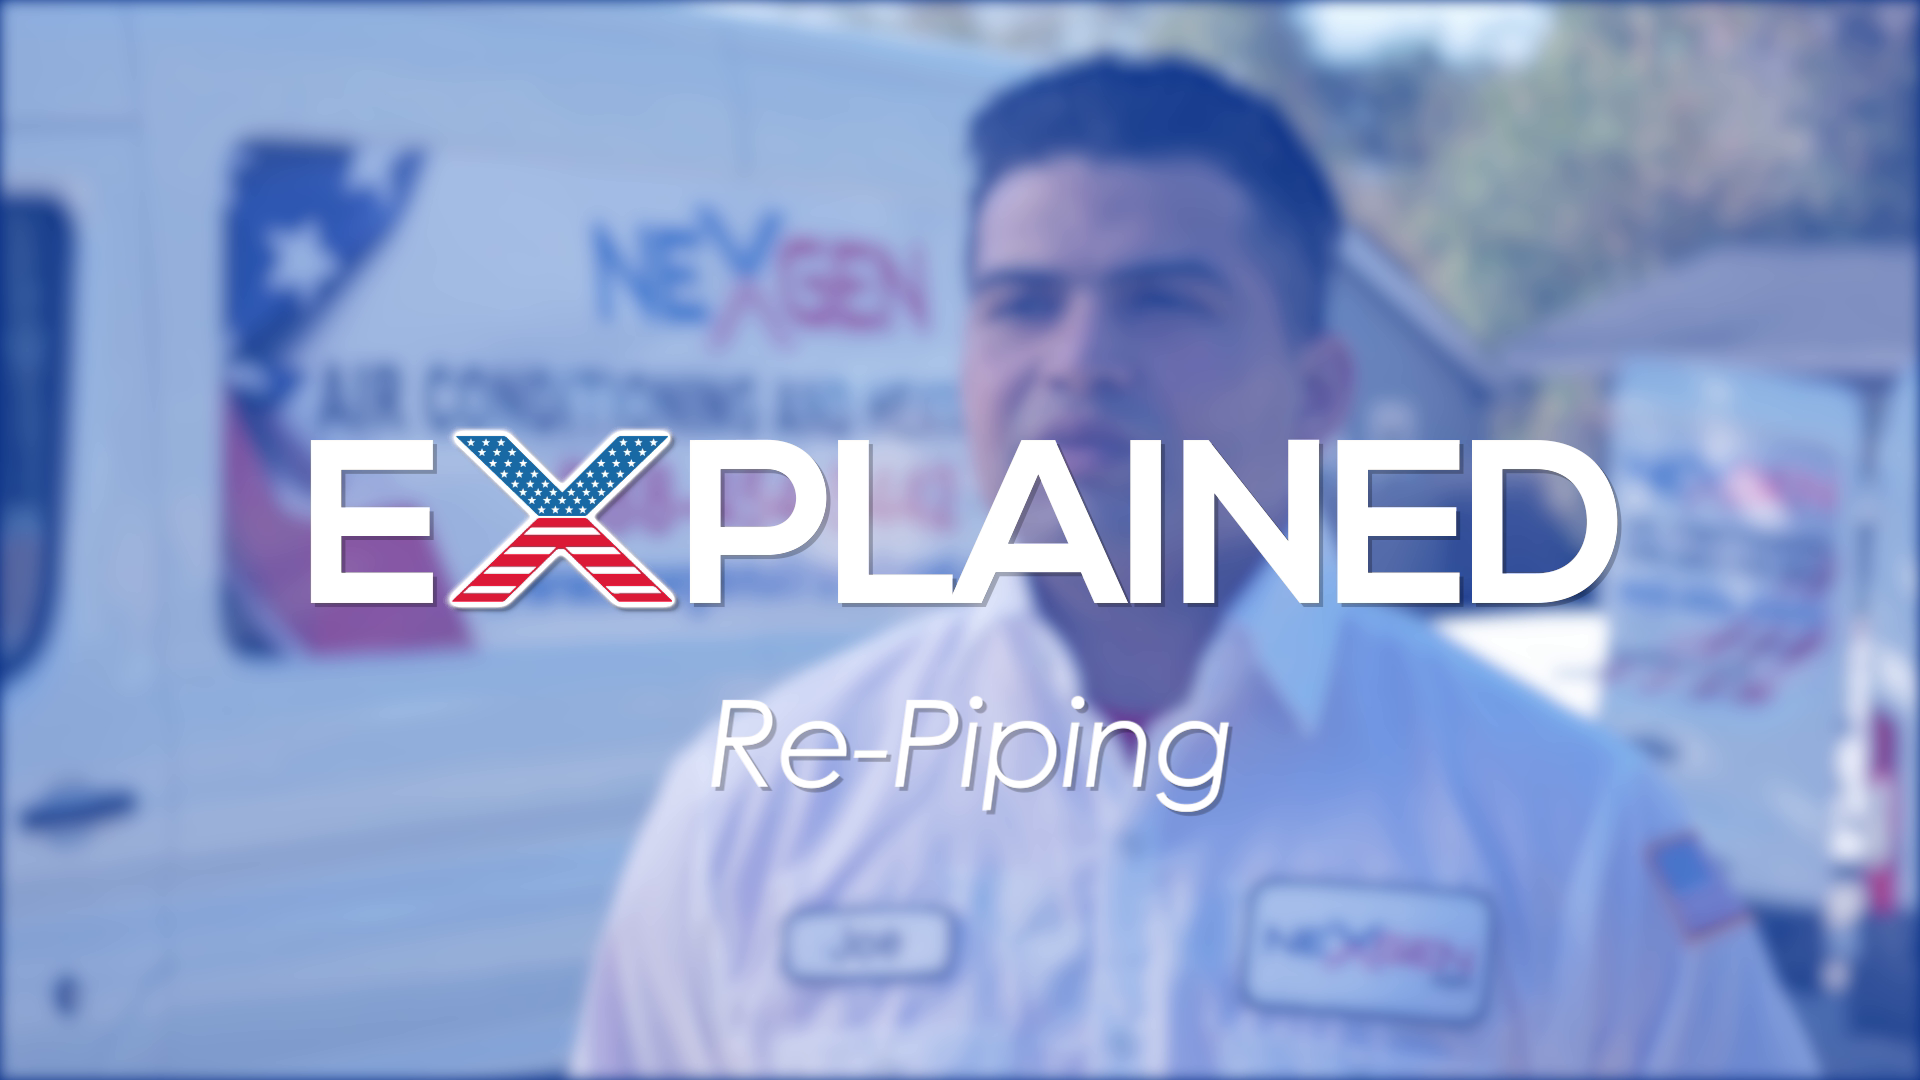 Re-Piping Xplained